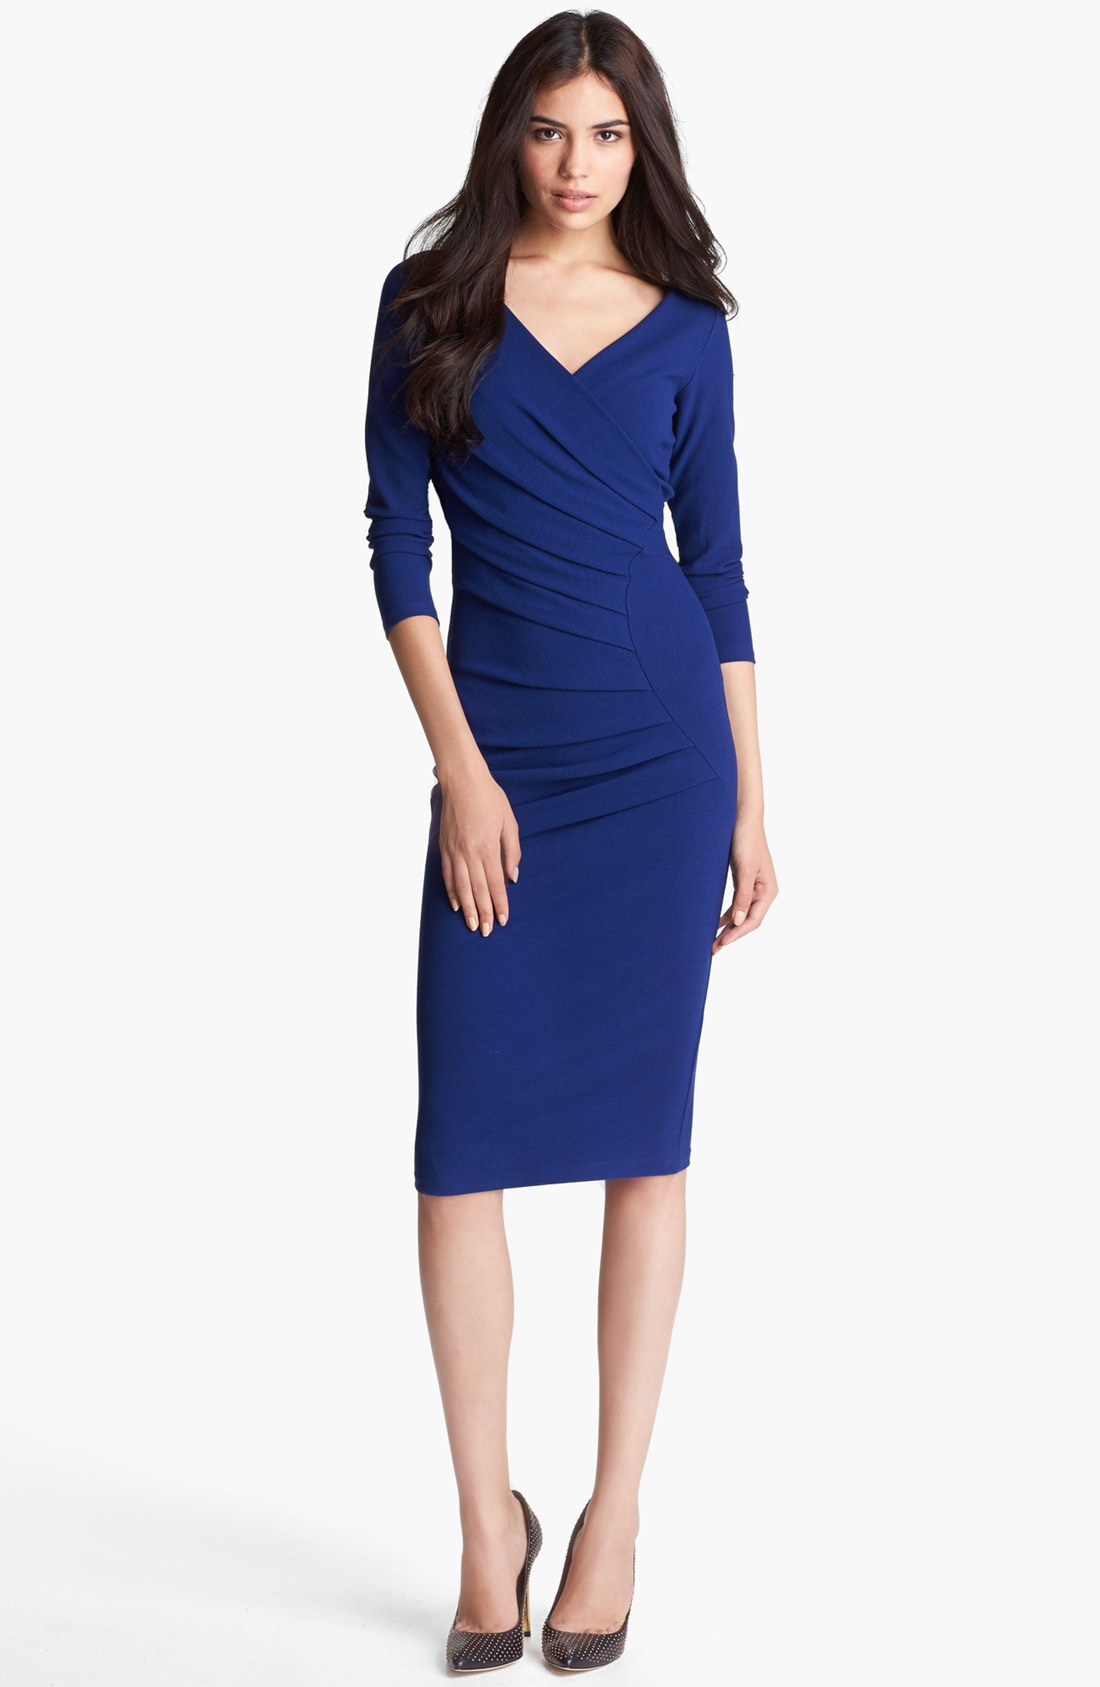 Chiara Boni The Most Popular Dress In America: La Petite Robe Di Chiara Boni Side Pleat Sheath Dress In